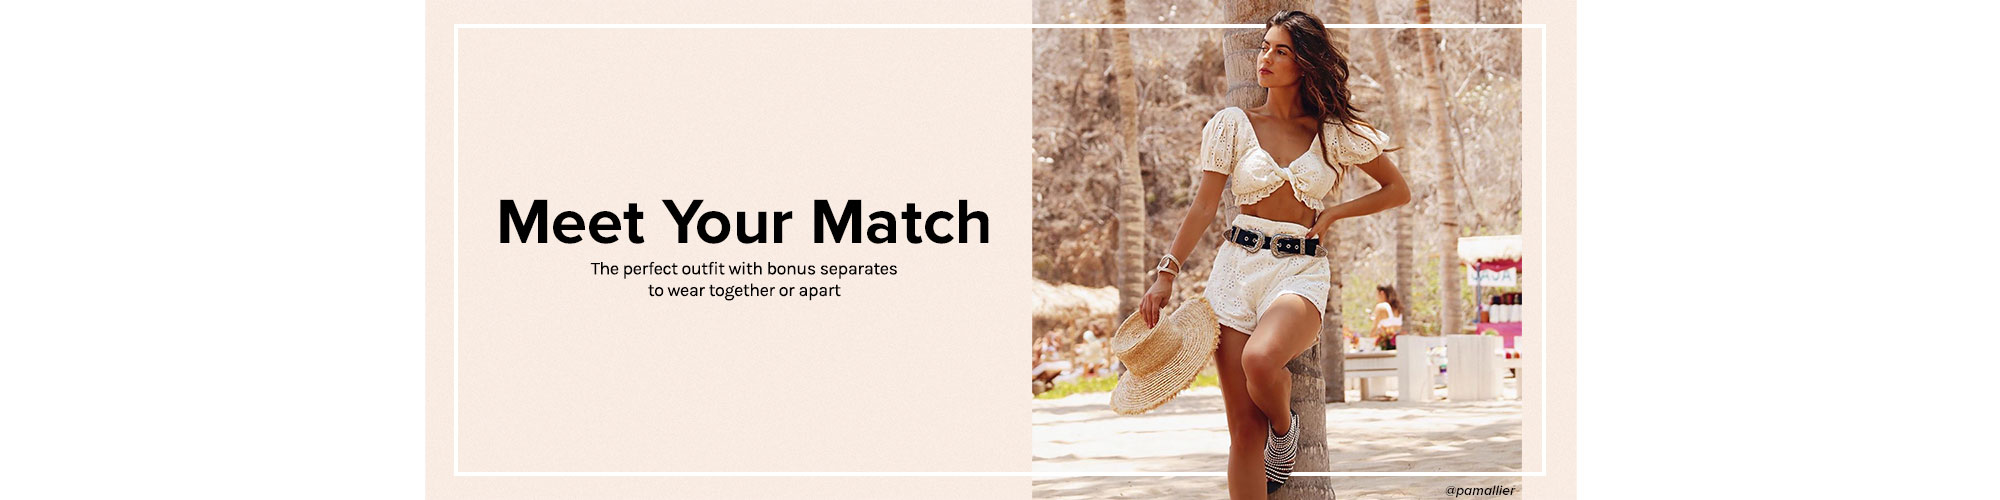 Meet Your Match. The perfect outfit with bonus separates to wear together or apart